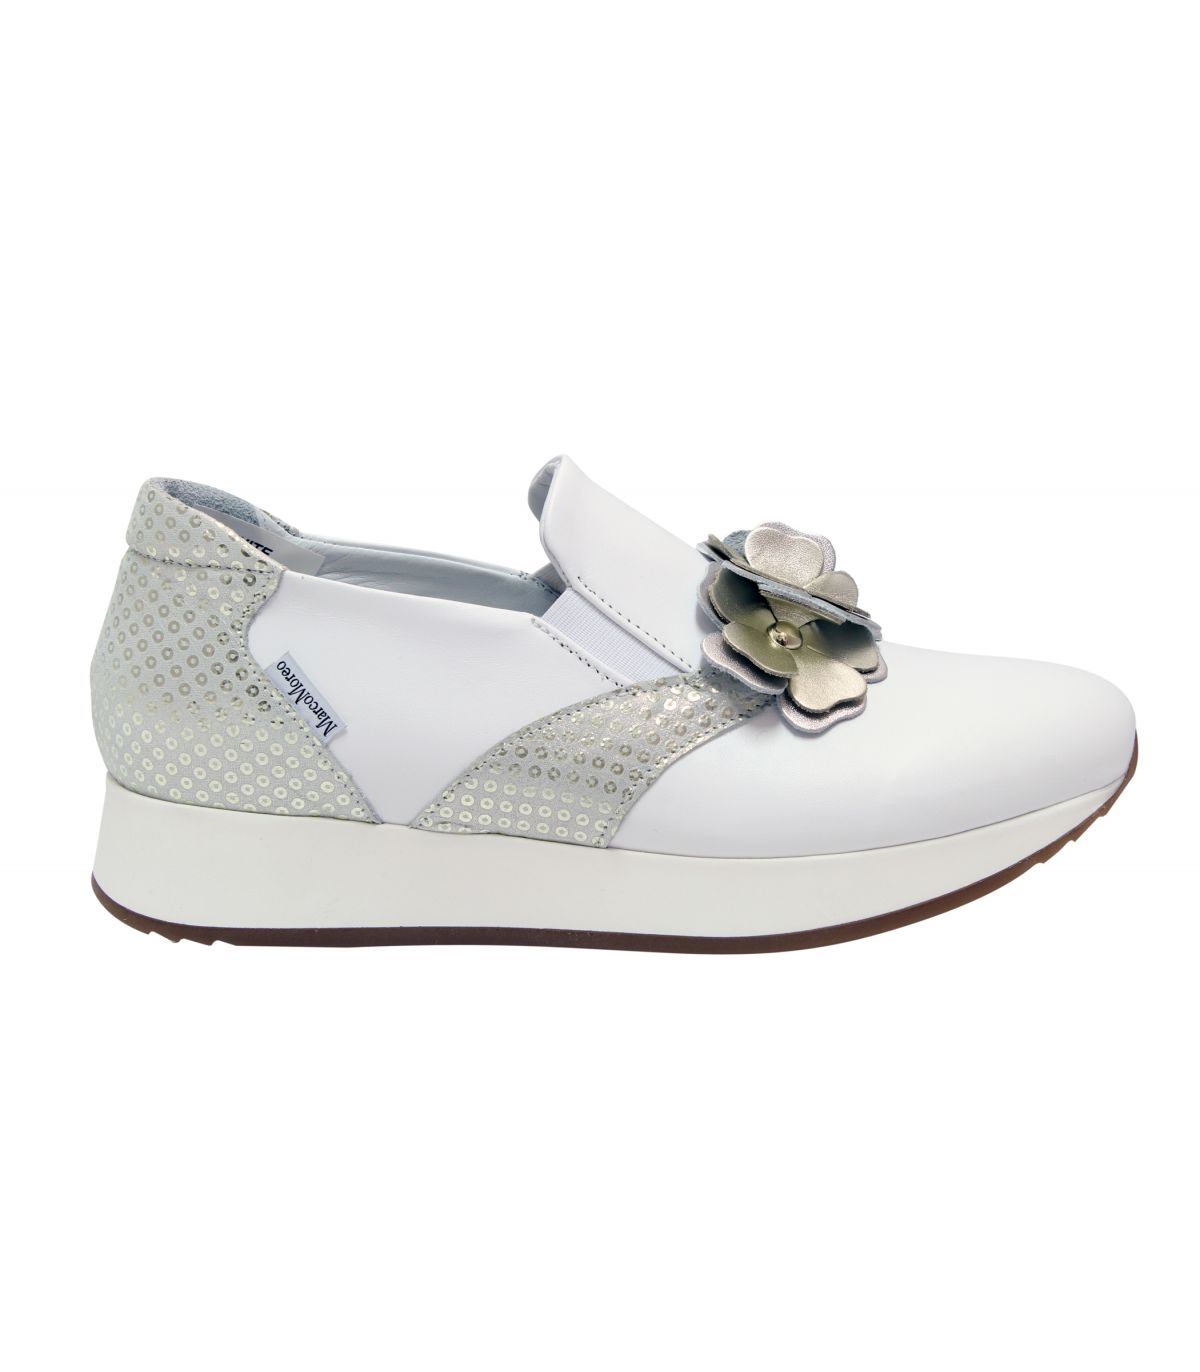 MARCO MOREO White leather slip on  with flower detail  Enrica Image